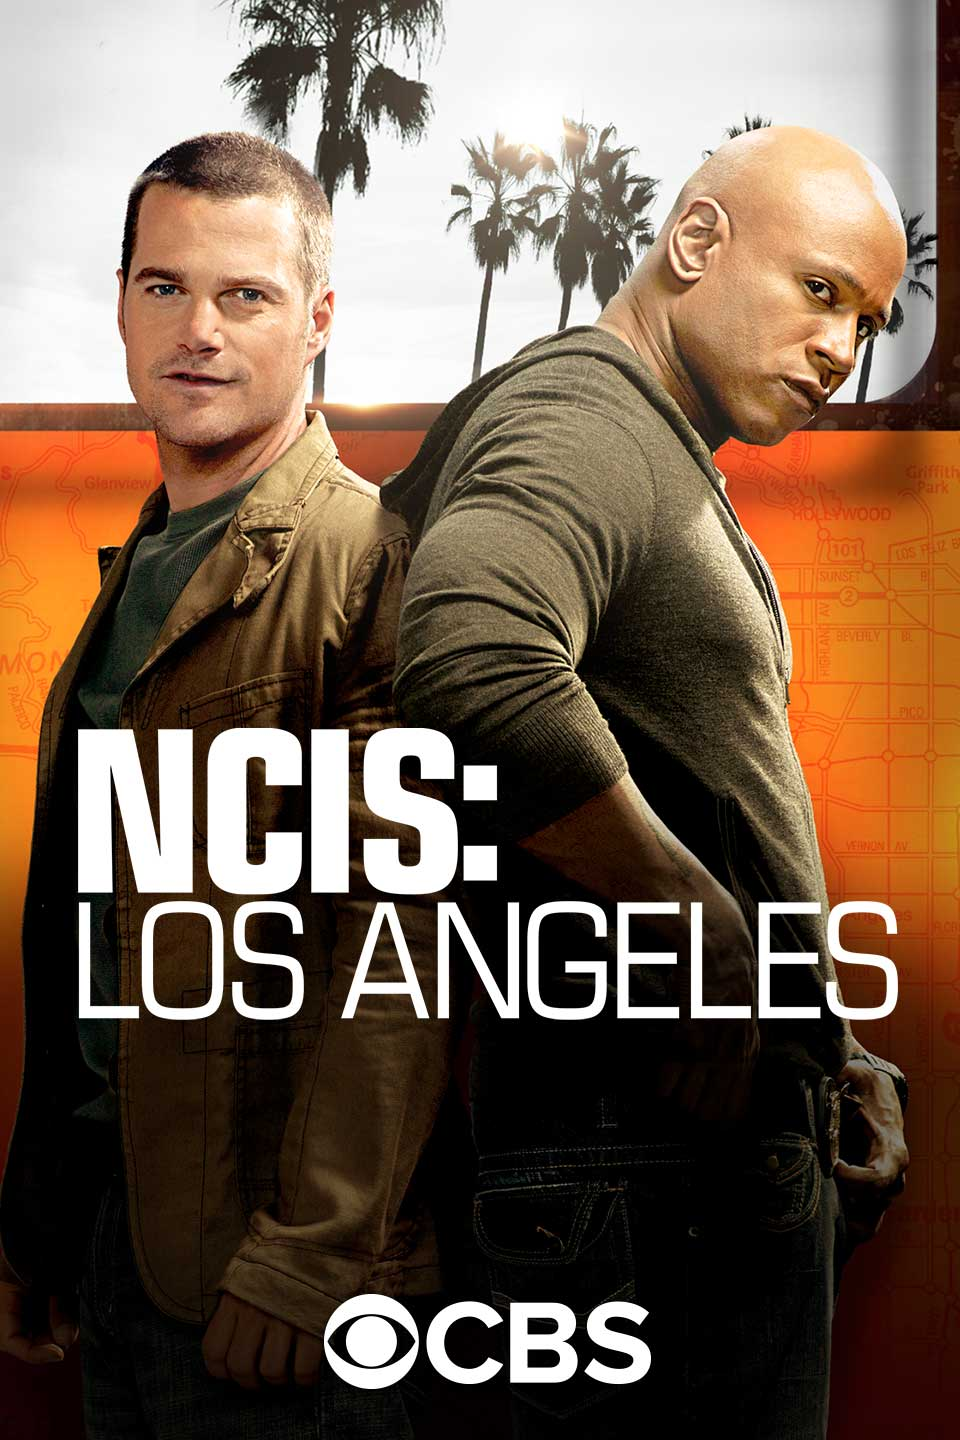 ncis los angeles season 8 episode 16 watch online